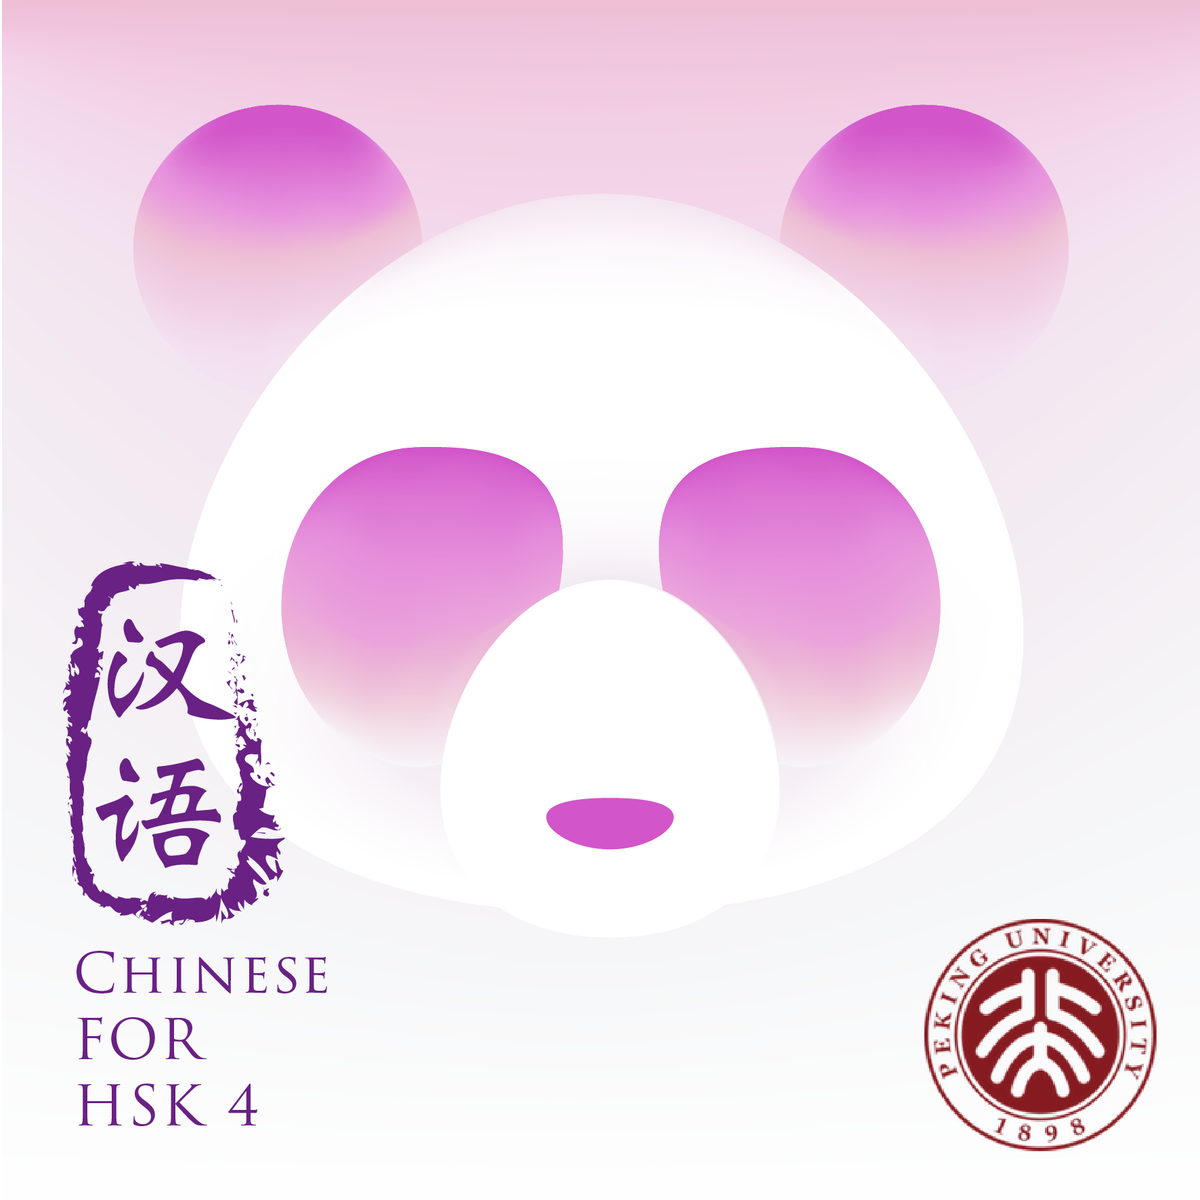 Chinese for HSK 4 Coupon